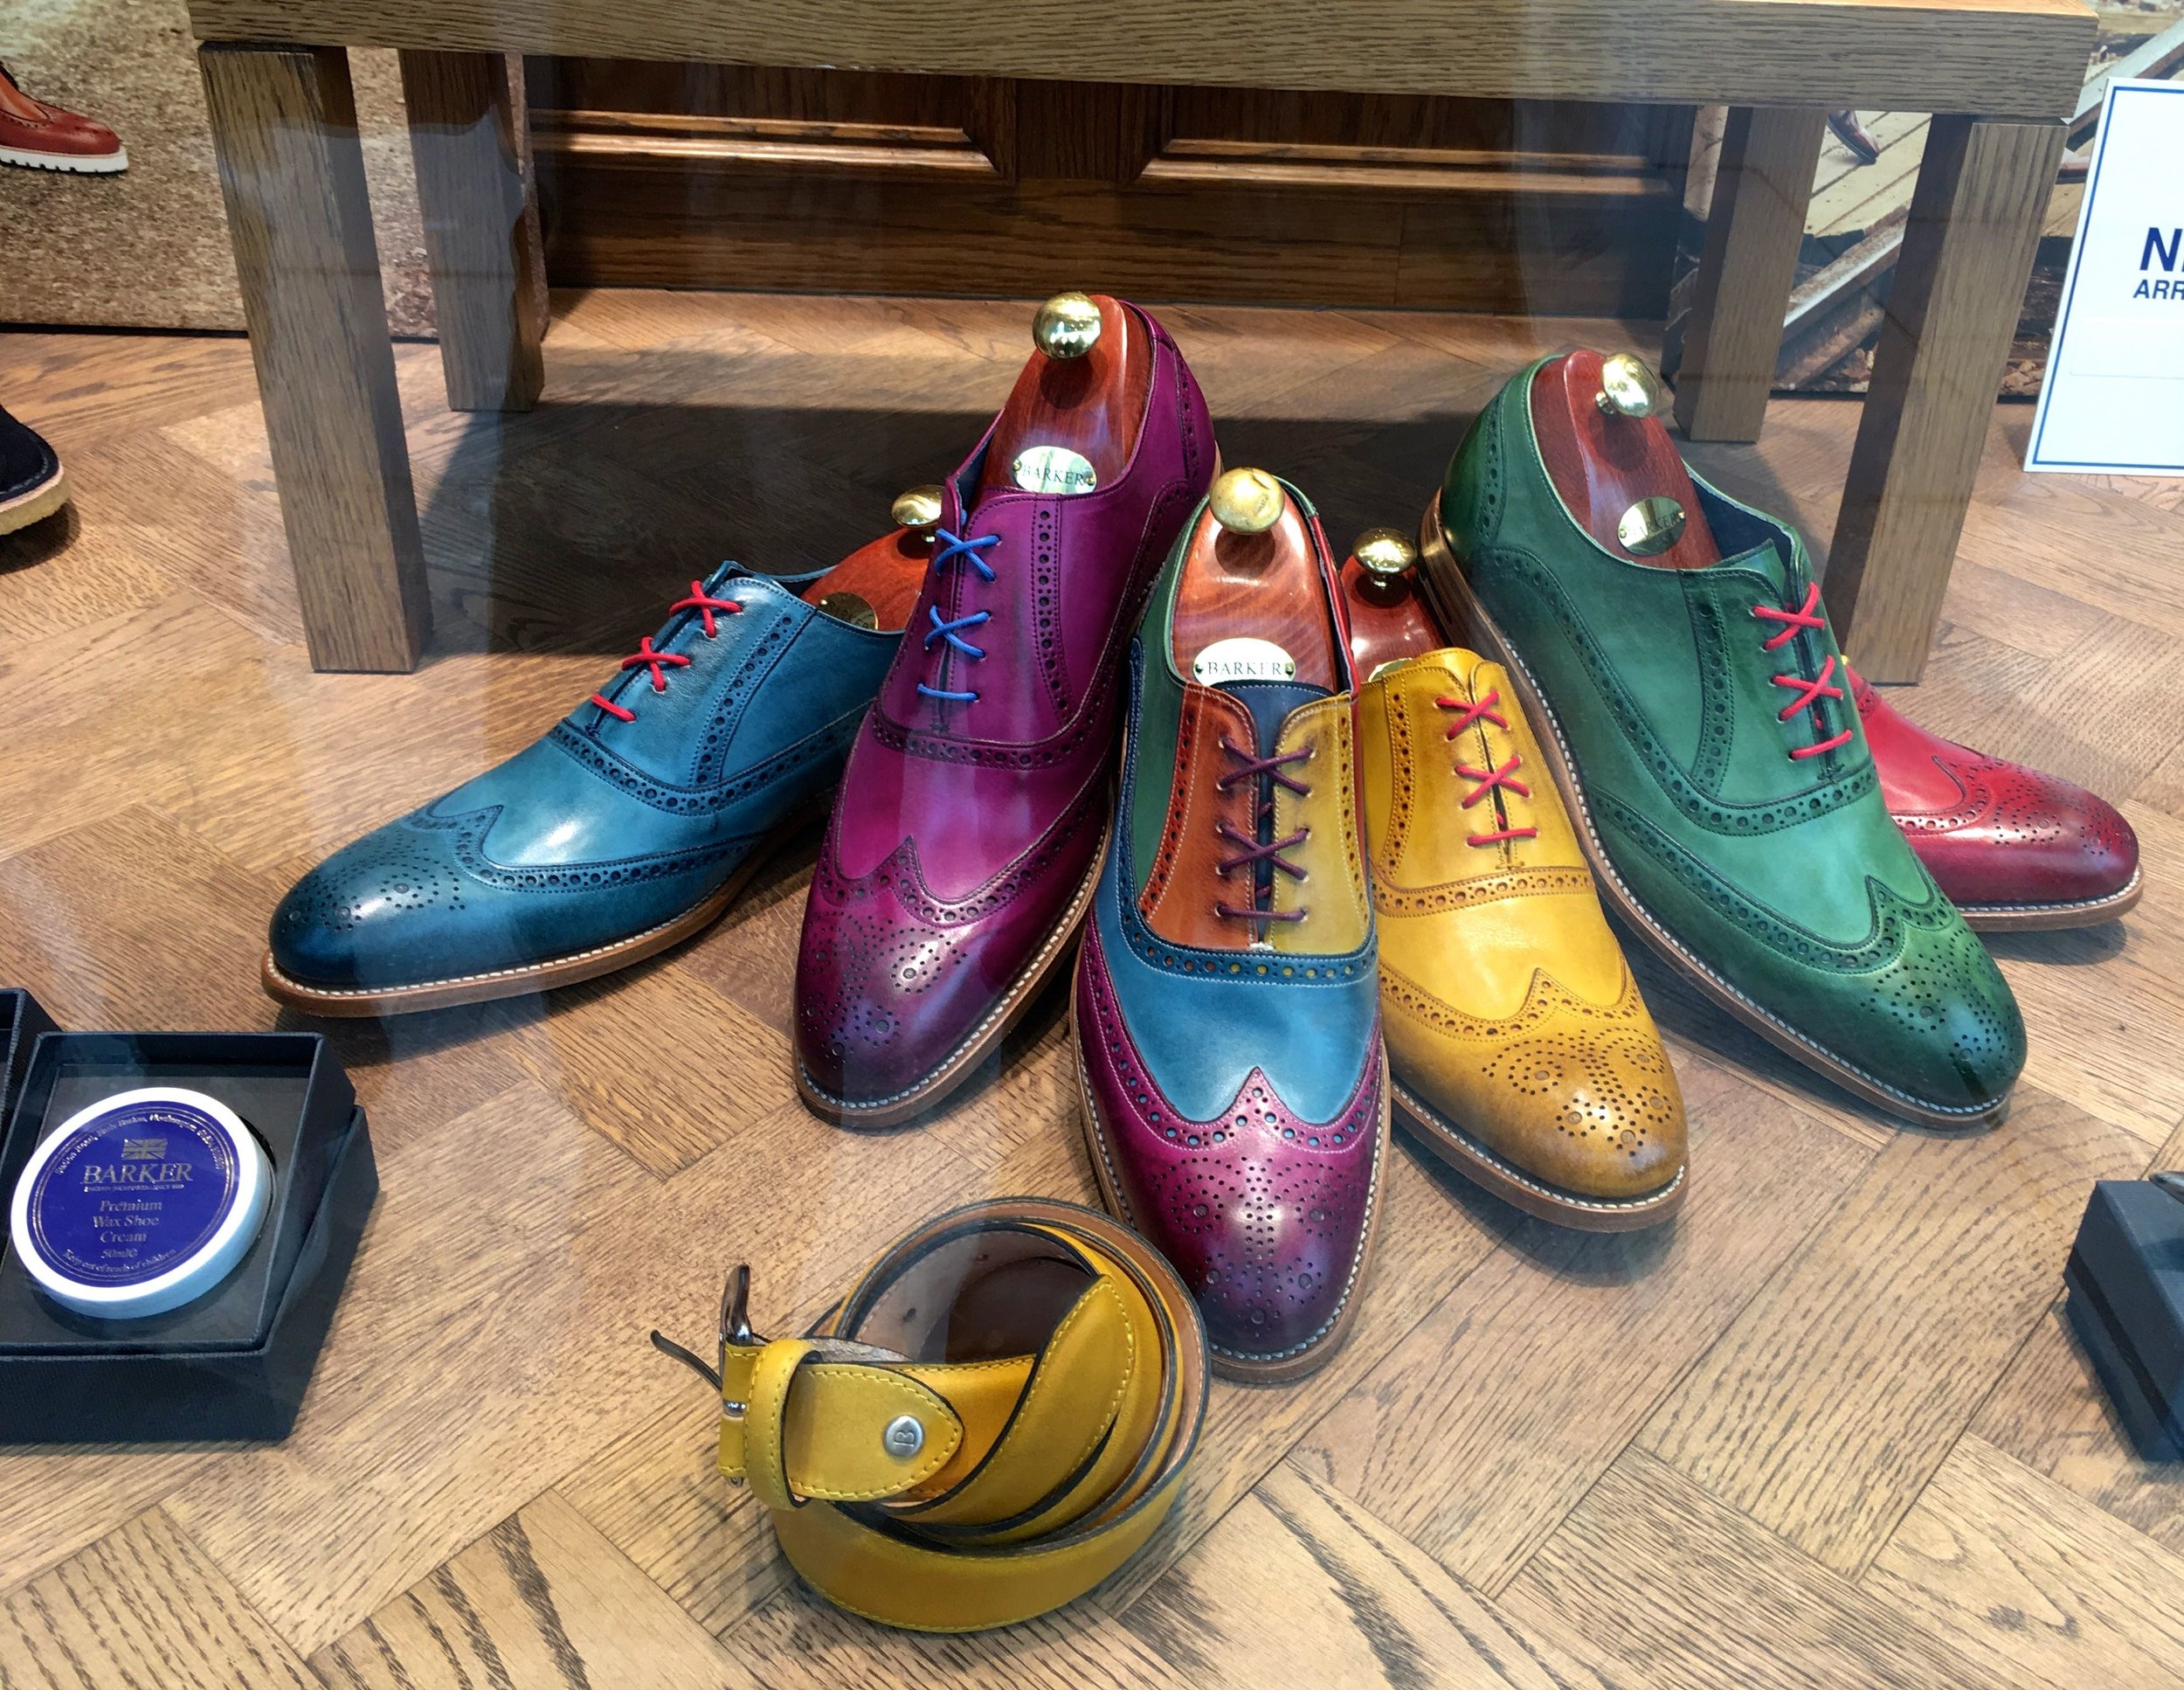 Colourful brogues